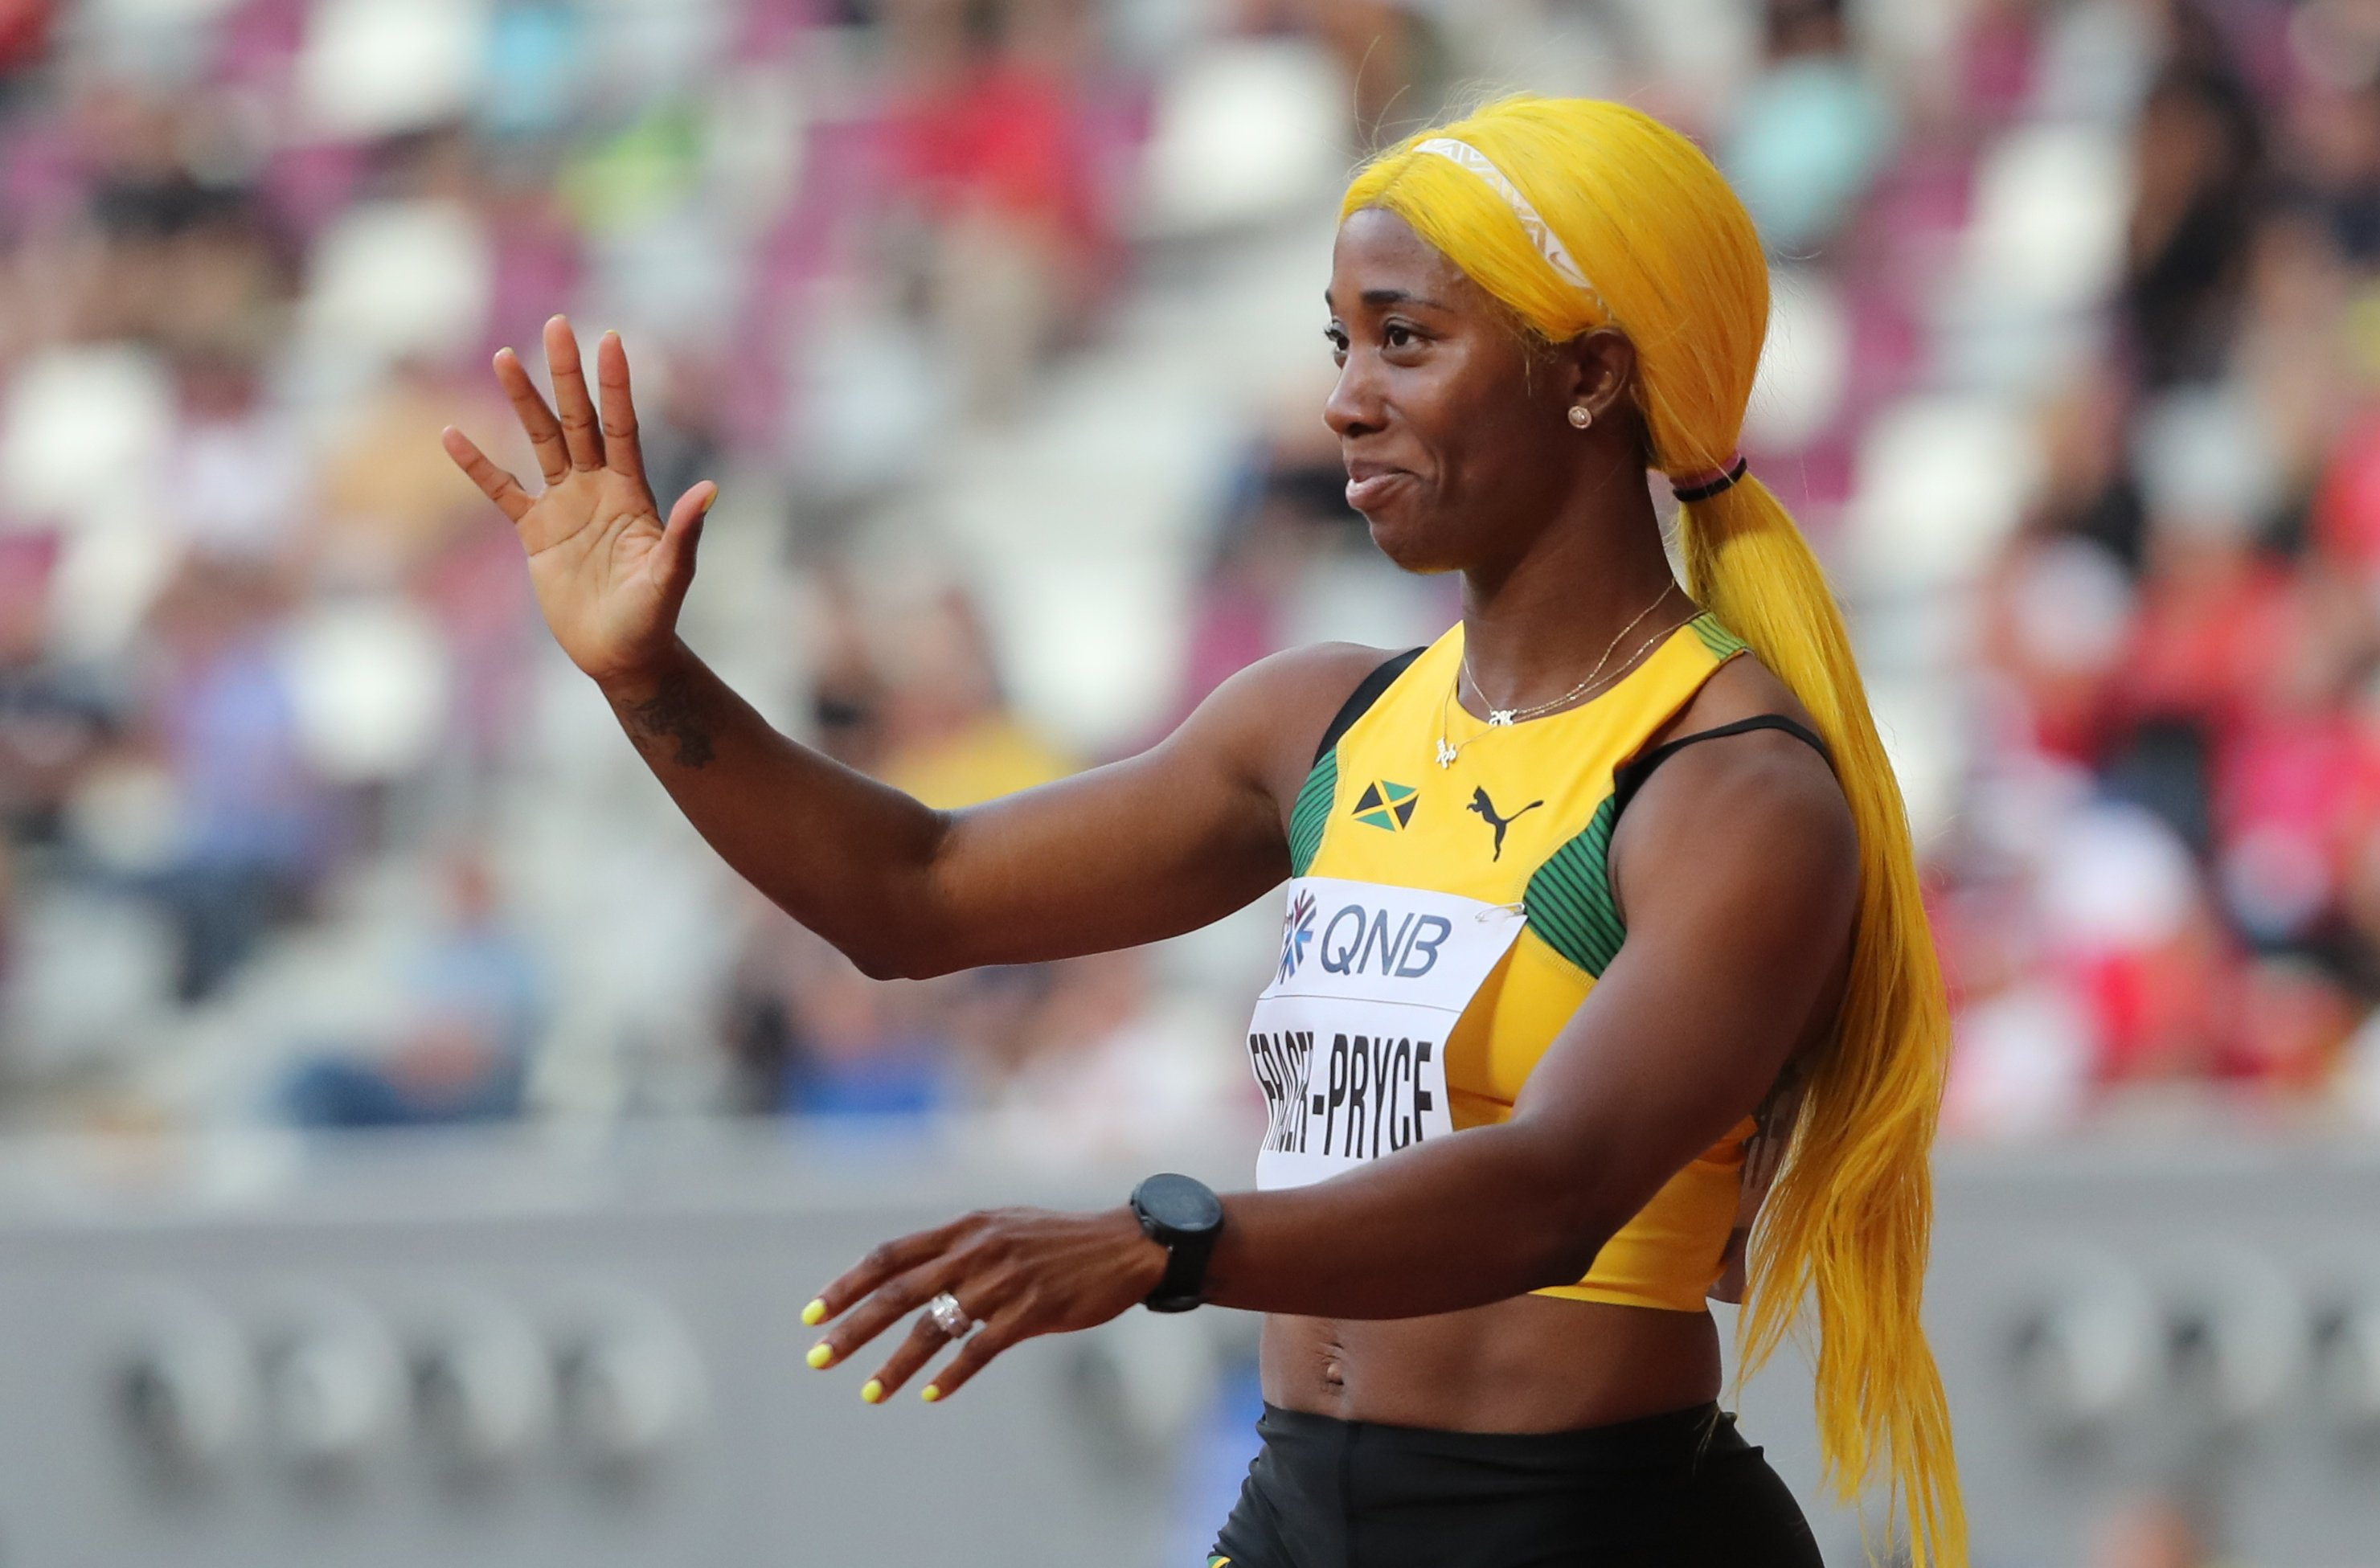 Top 4 Tips For Being An Athlete Who Wears Wigs